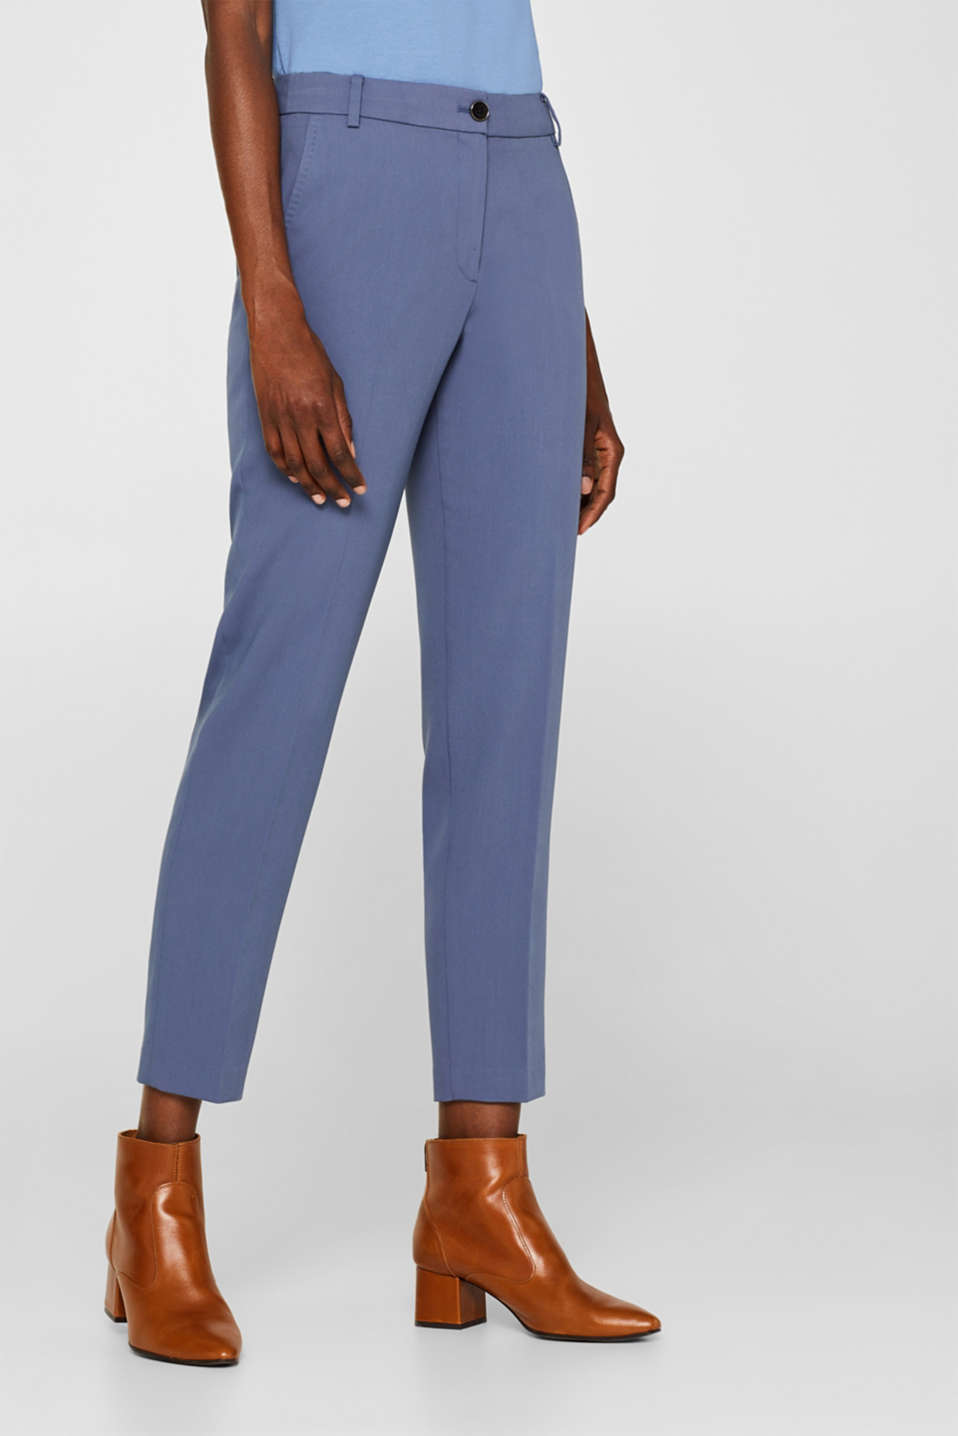 STITCHING mix + match stretch trousers with decorative stitching, GREY BLUE 2, detail image number 5